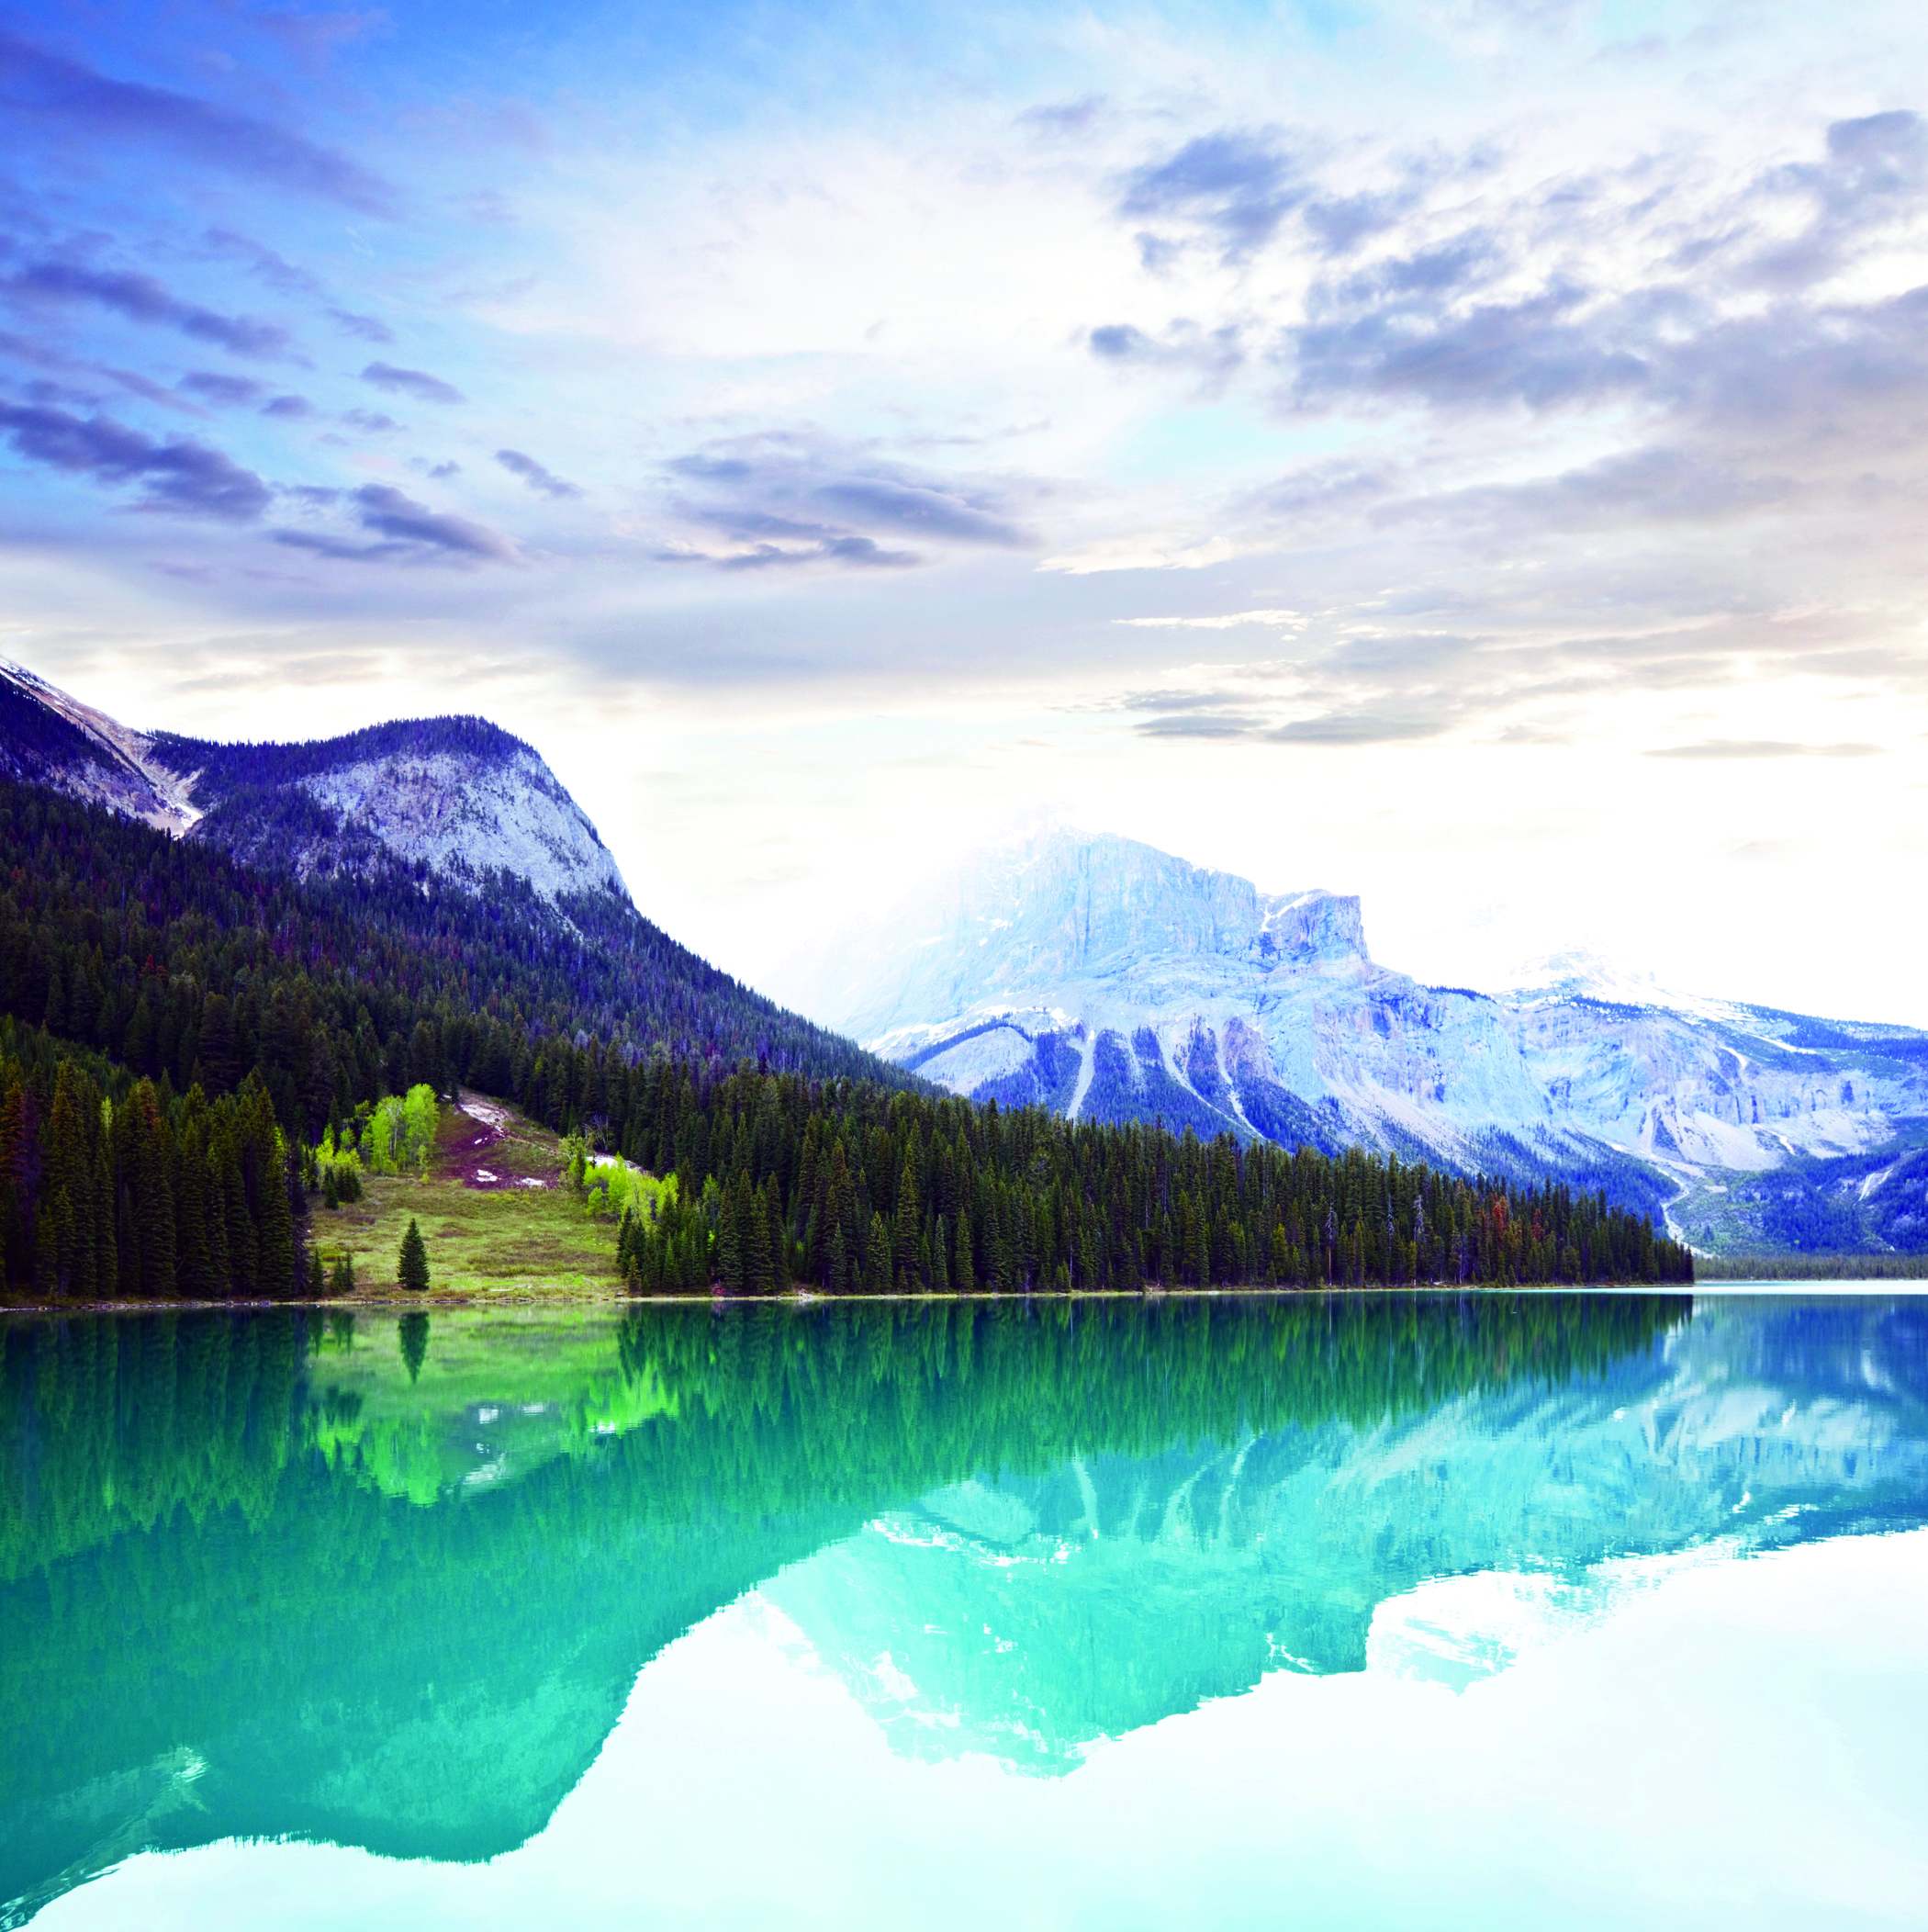 A view of the Canadian Rockies from across a lake